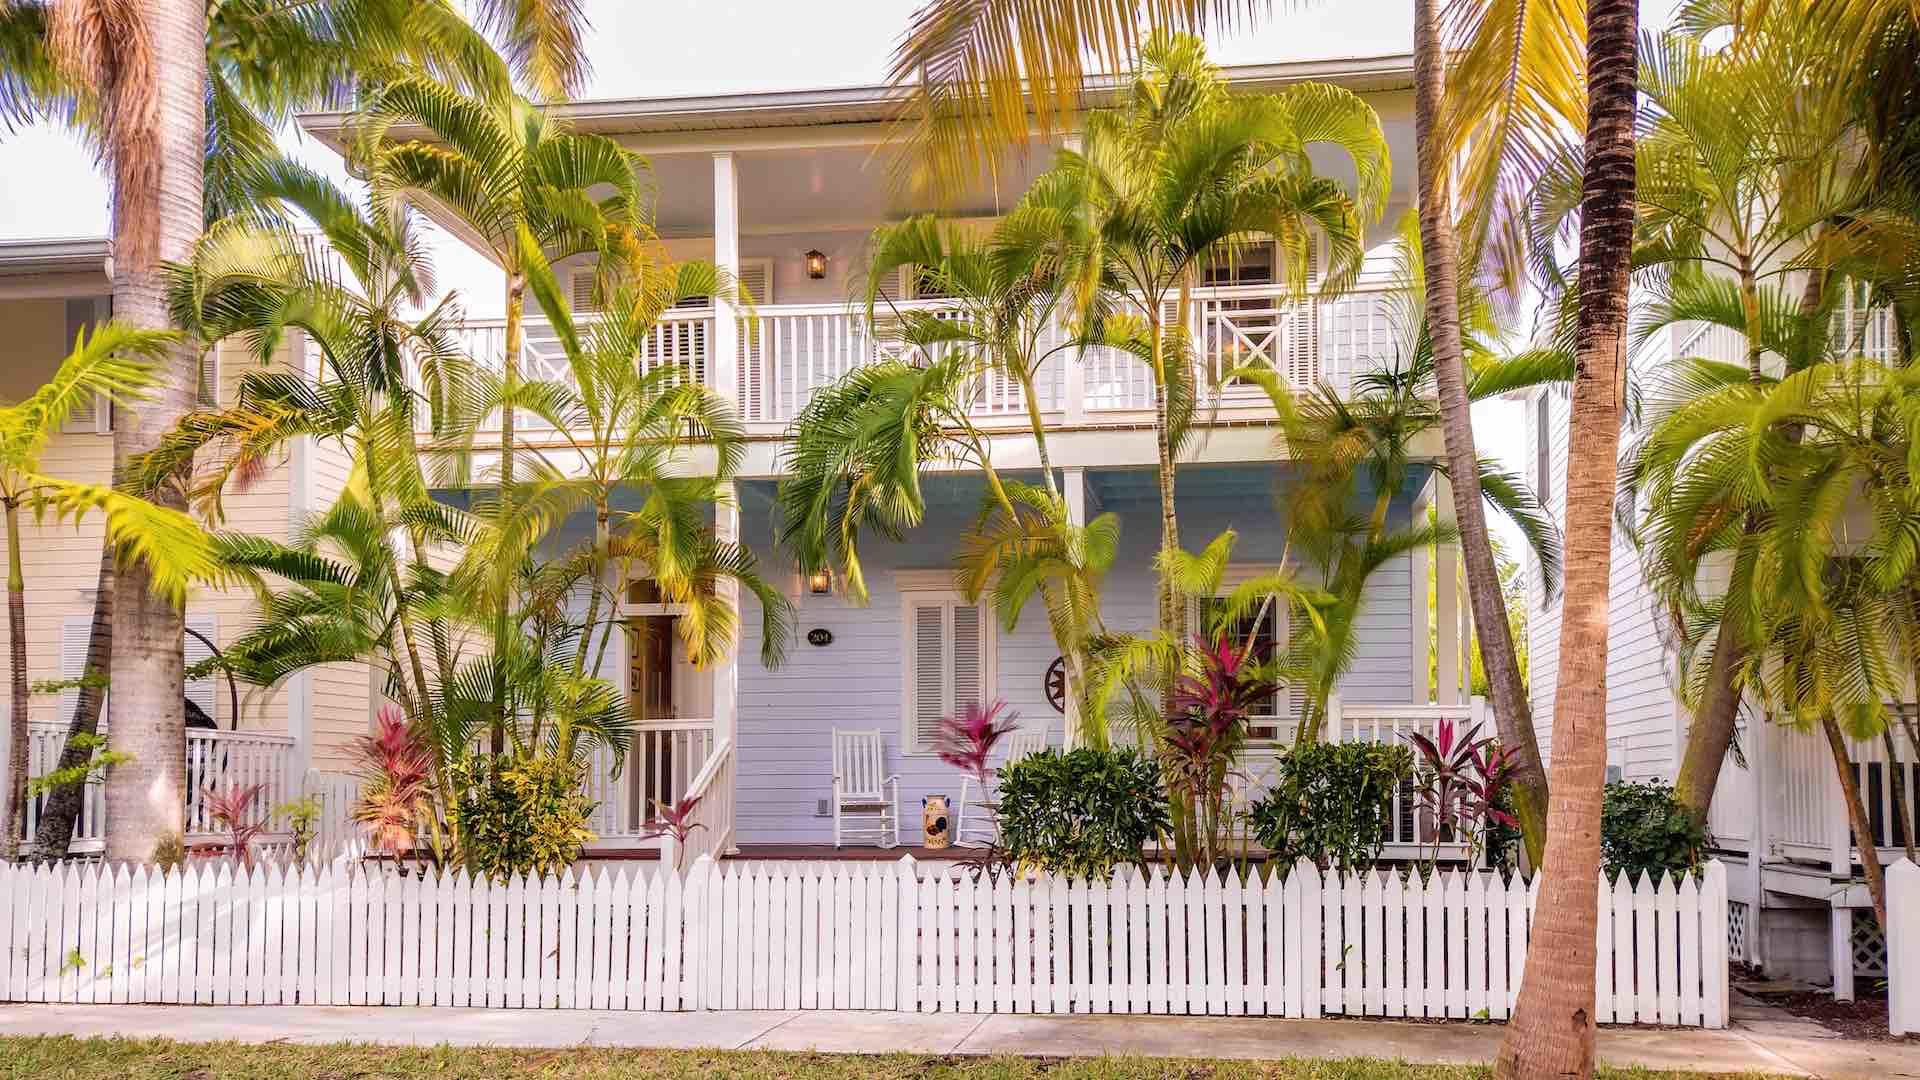 La Provence Tropicale is located in The Sanctuary at the Key West Golf Club...